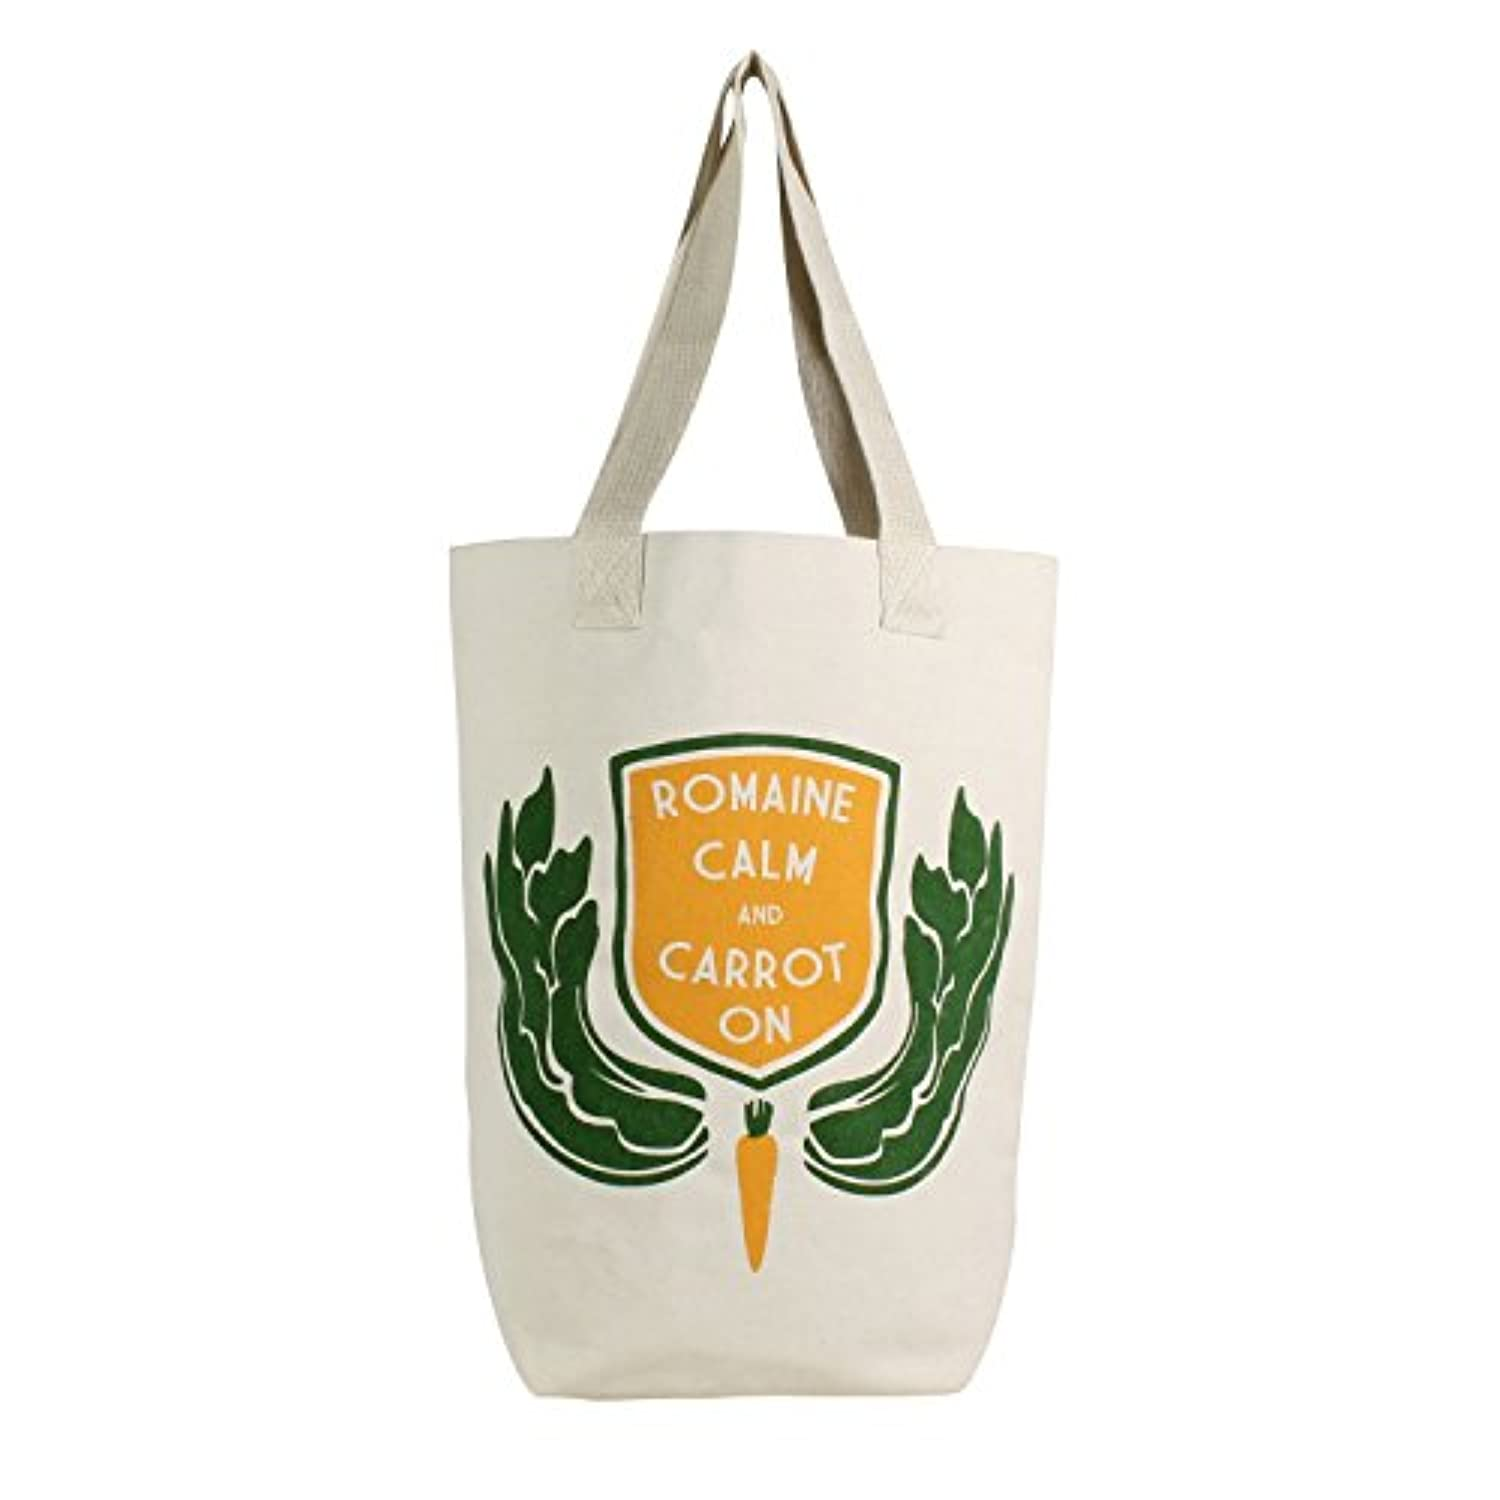 Farmer market Tote – Romaine Calm And Carrot On